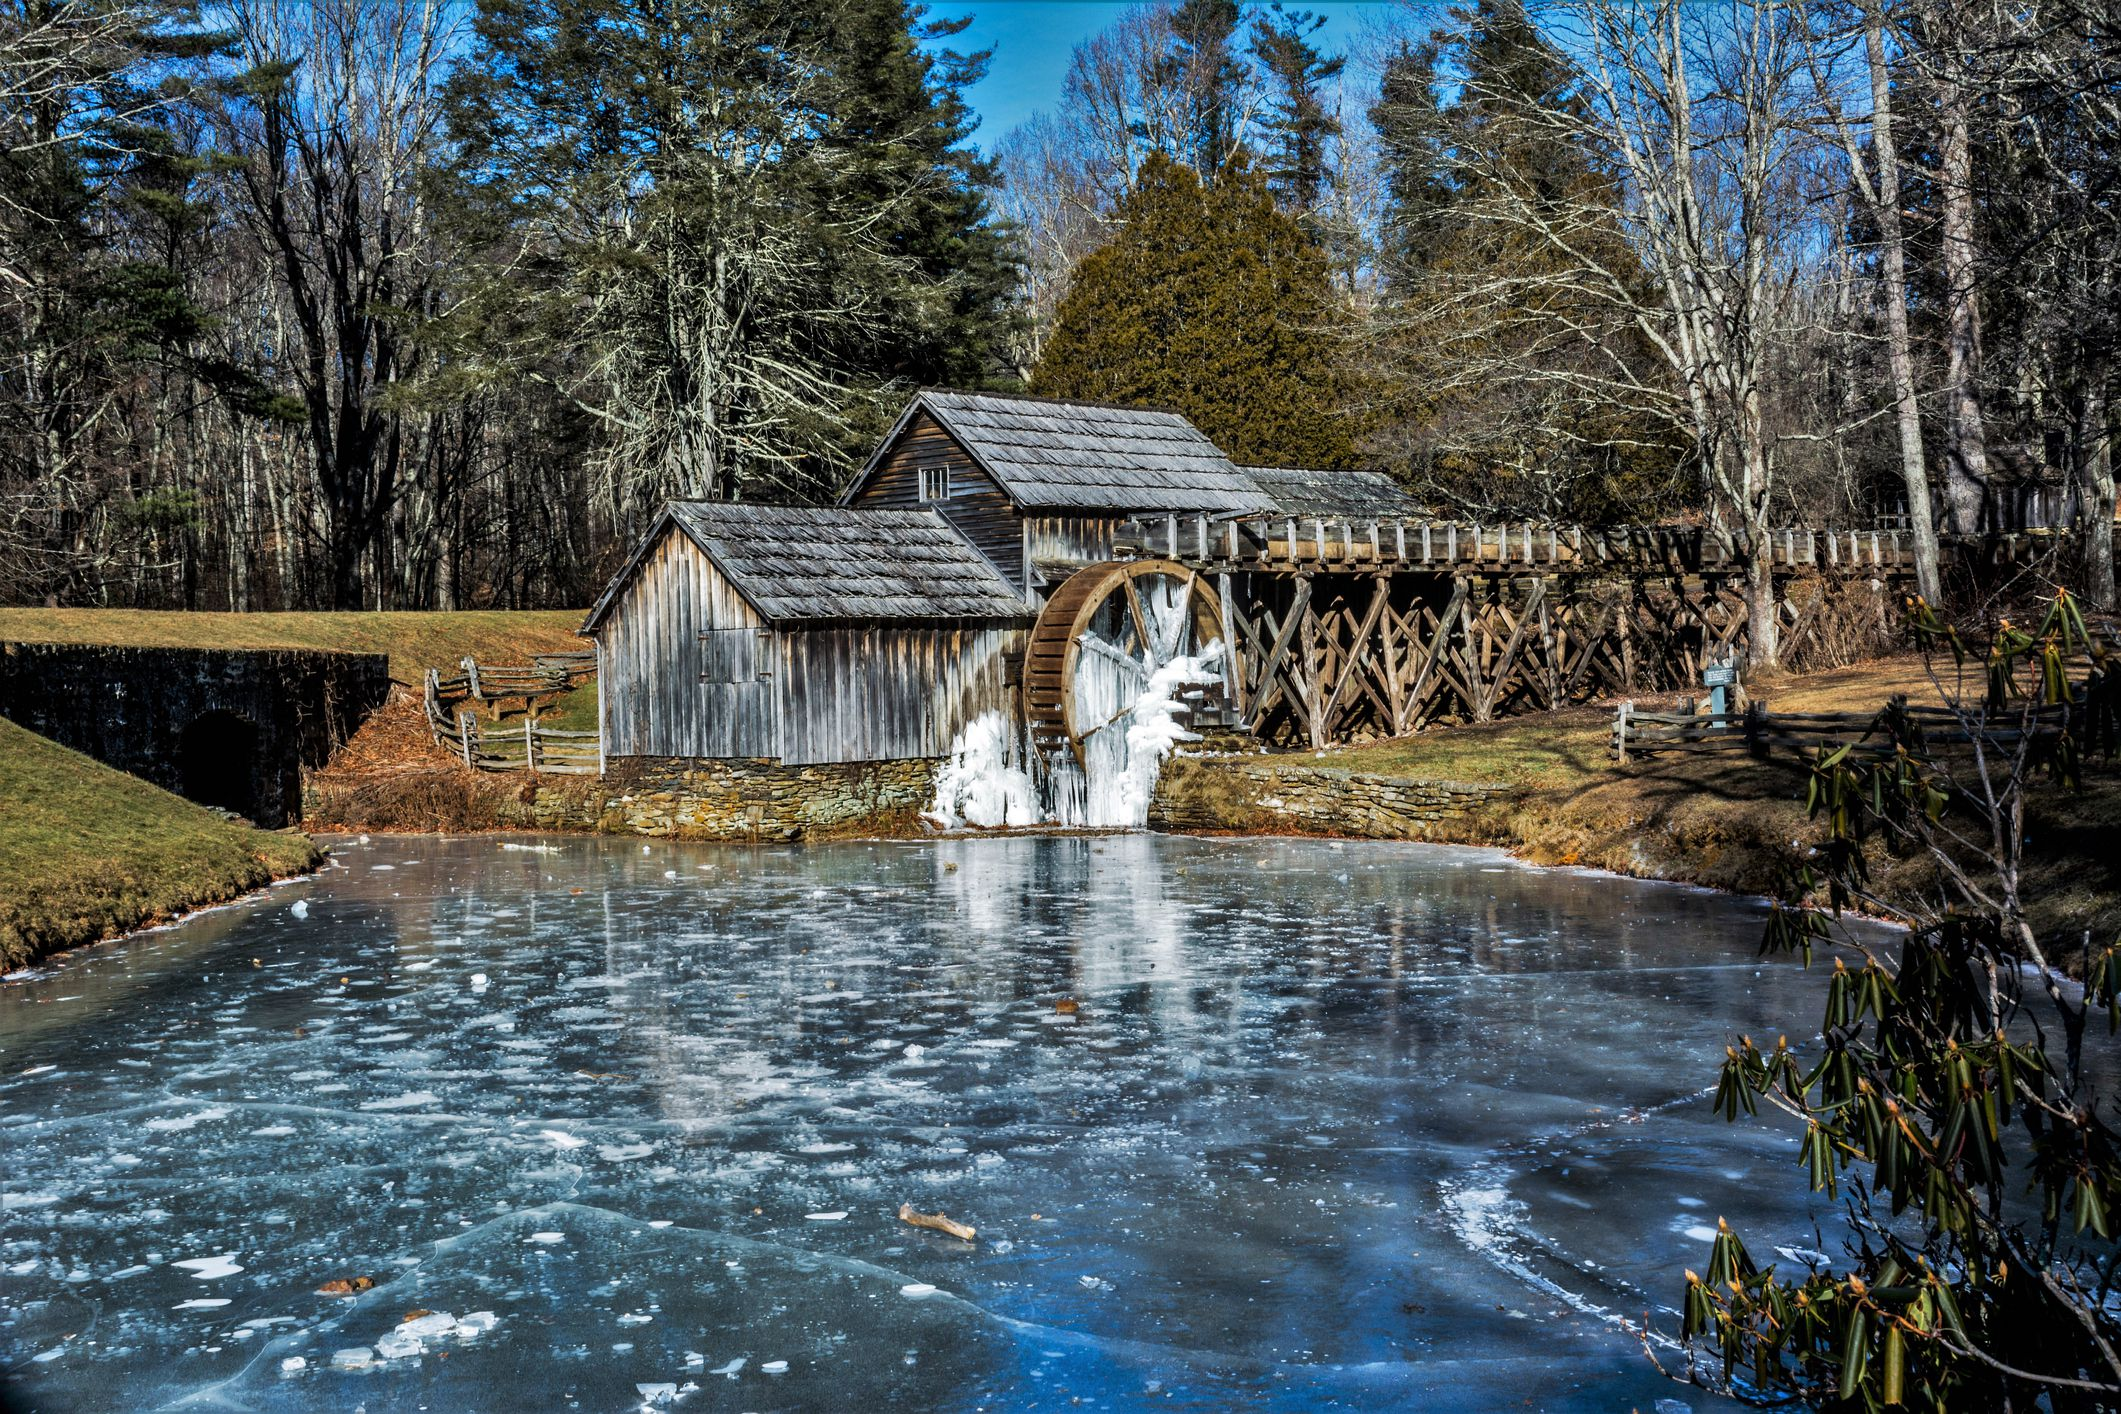 Mill with a water wheel built on a river surrounded by trees.